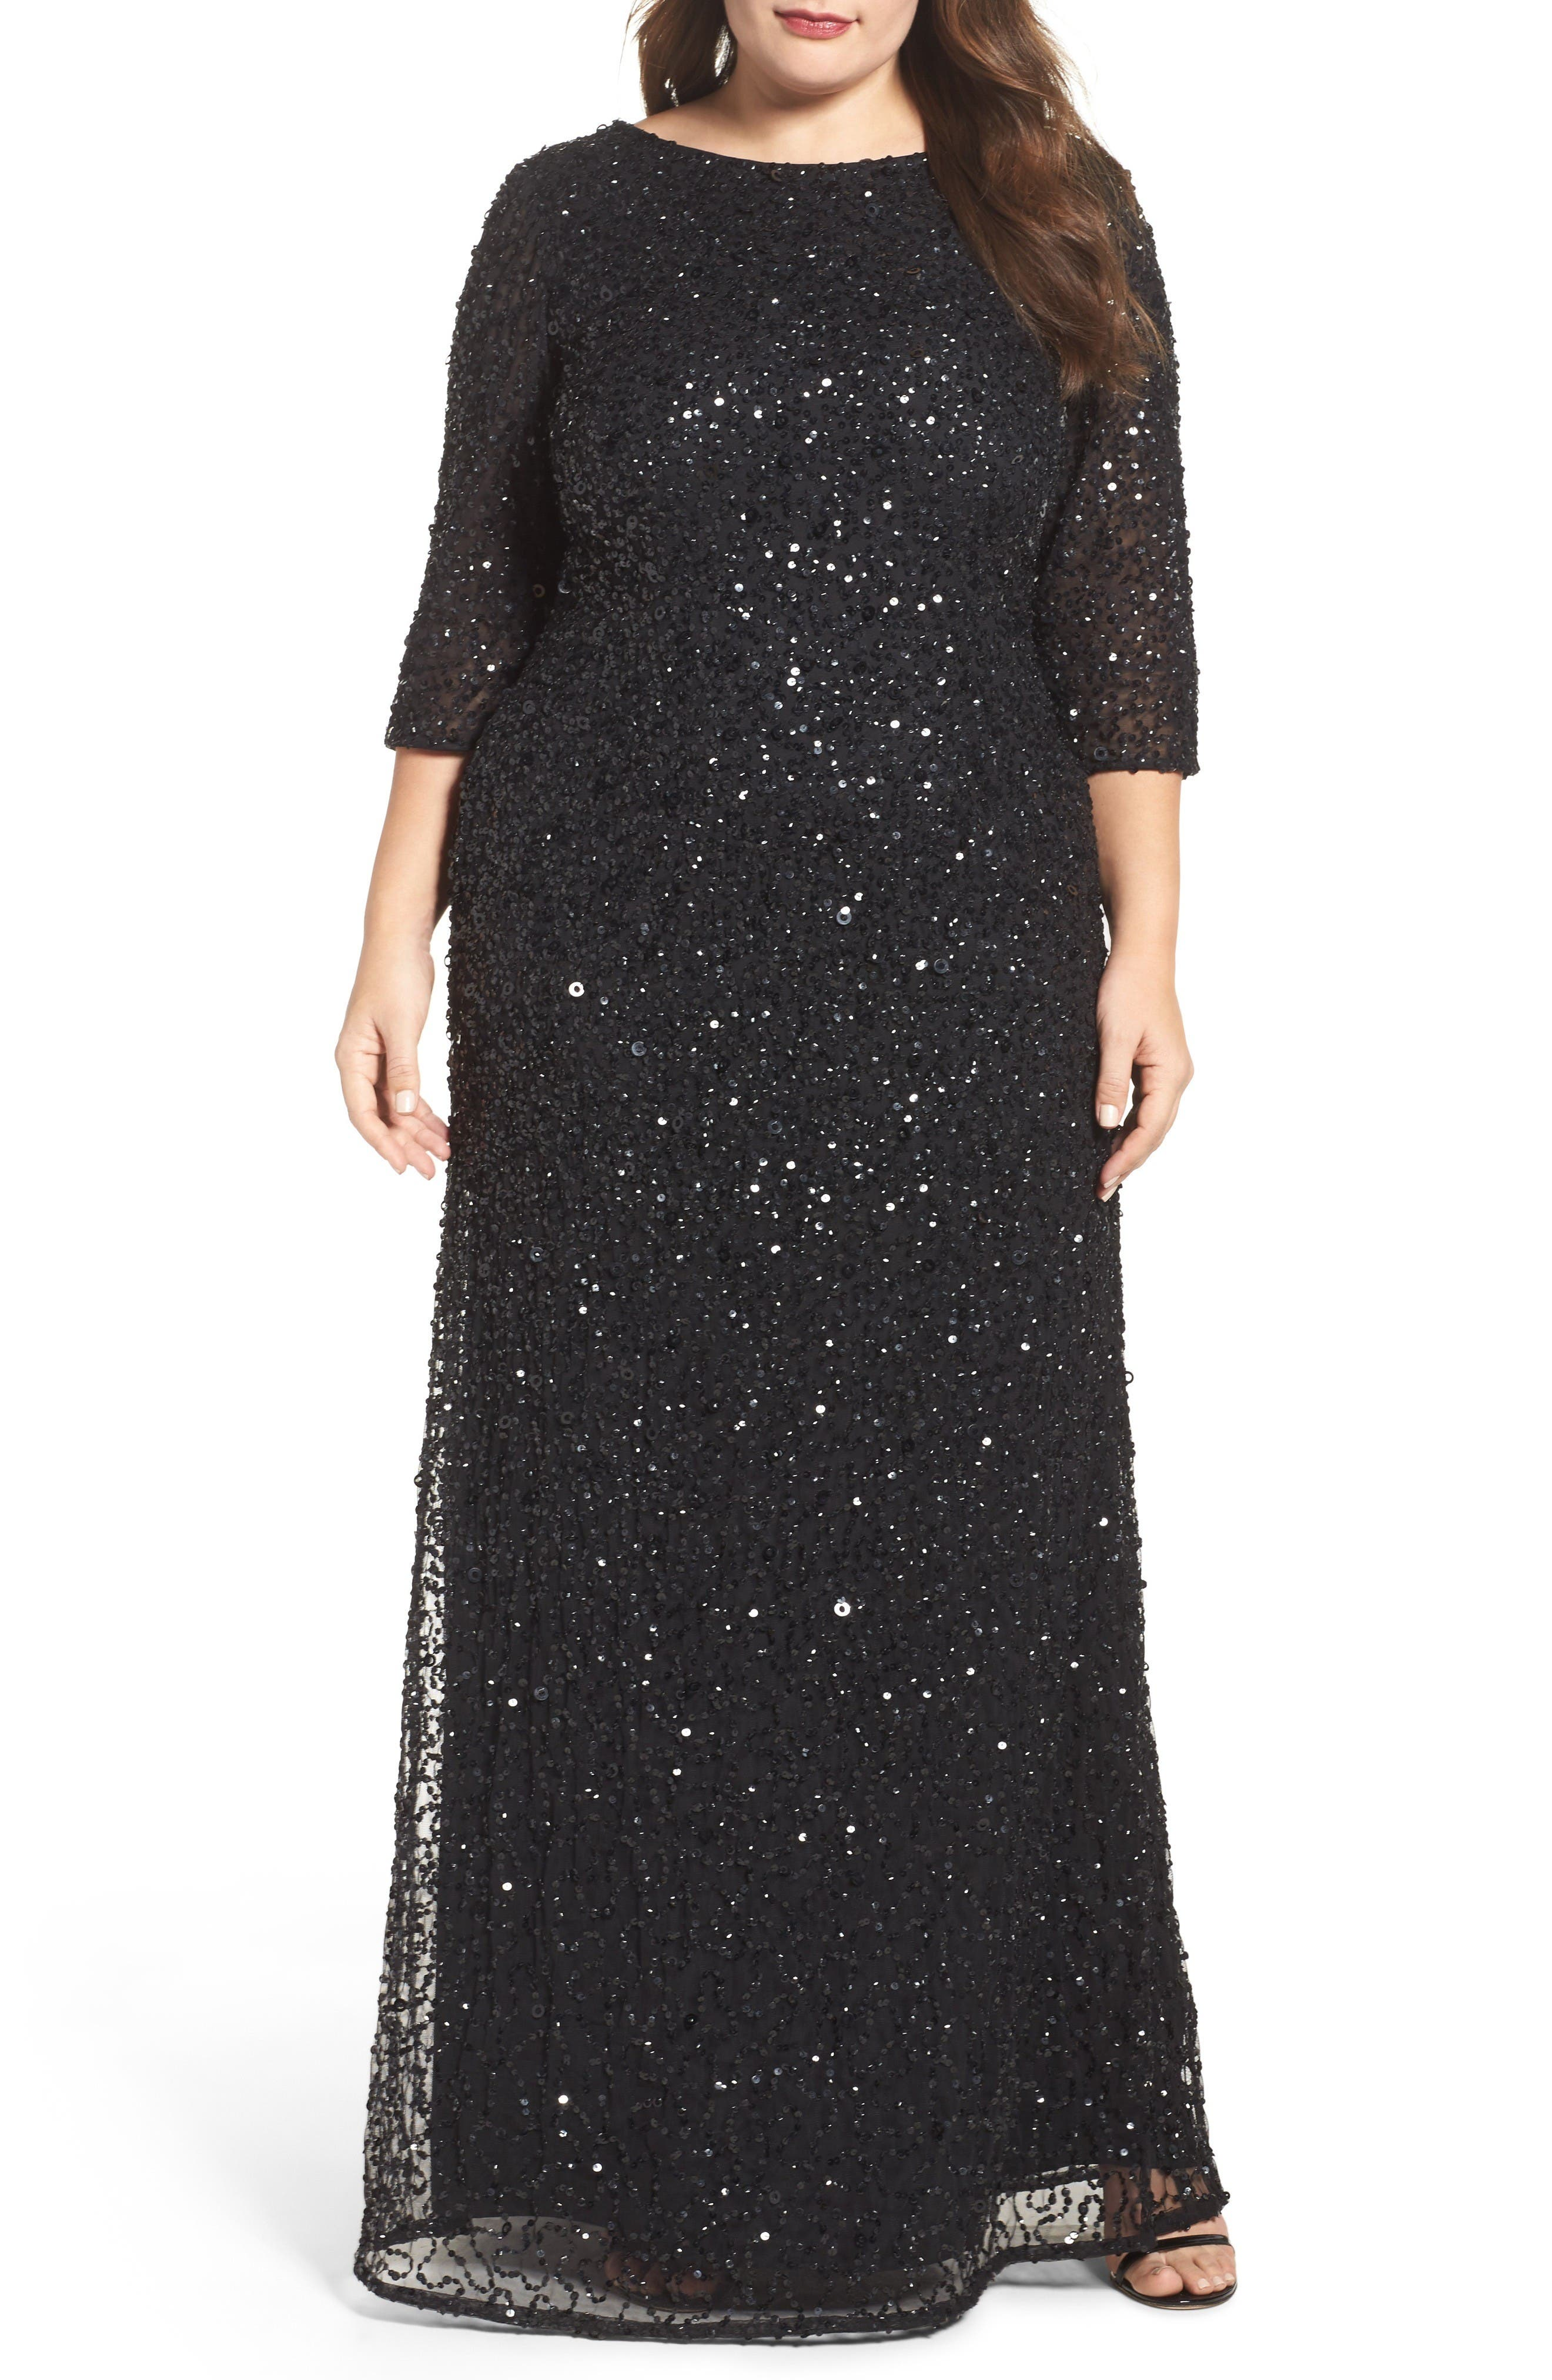 Adrianna Papell Plus Size Long Sleeve Dresses